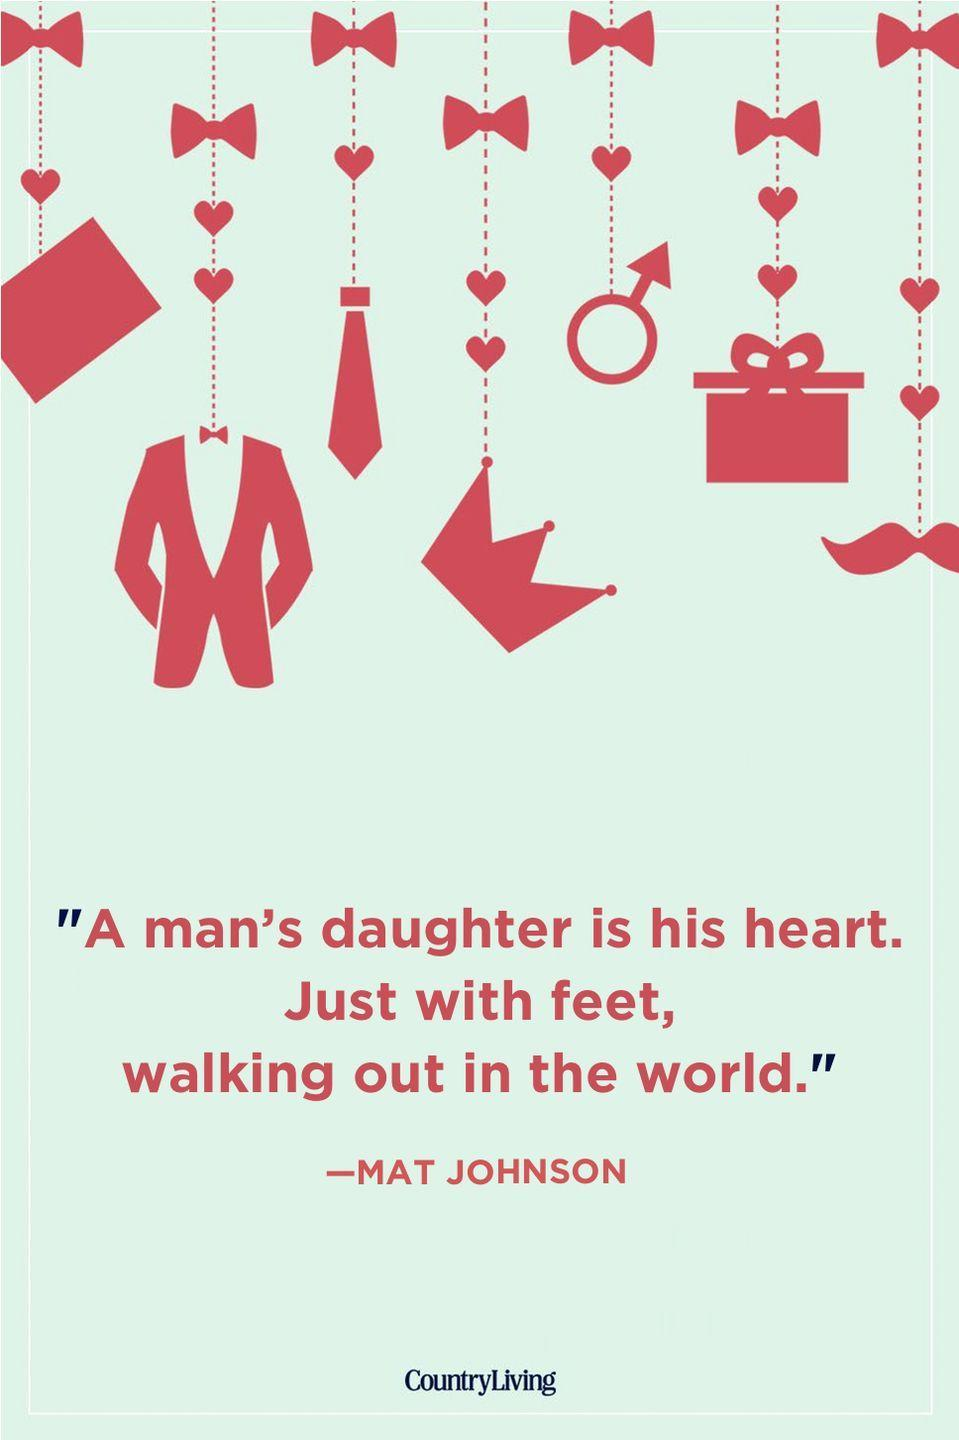 "<p>""A man's daughter is his heart. Just with feet, walking out in the world.""</p>"